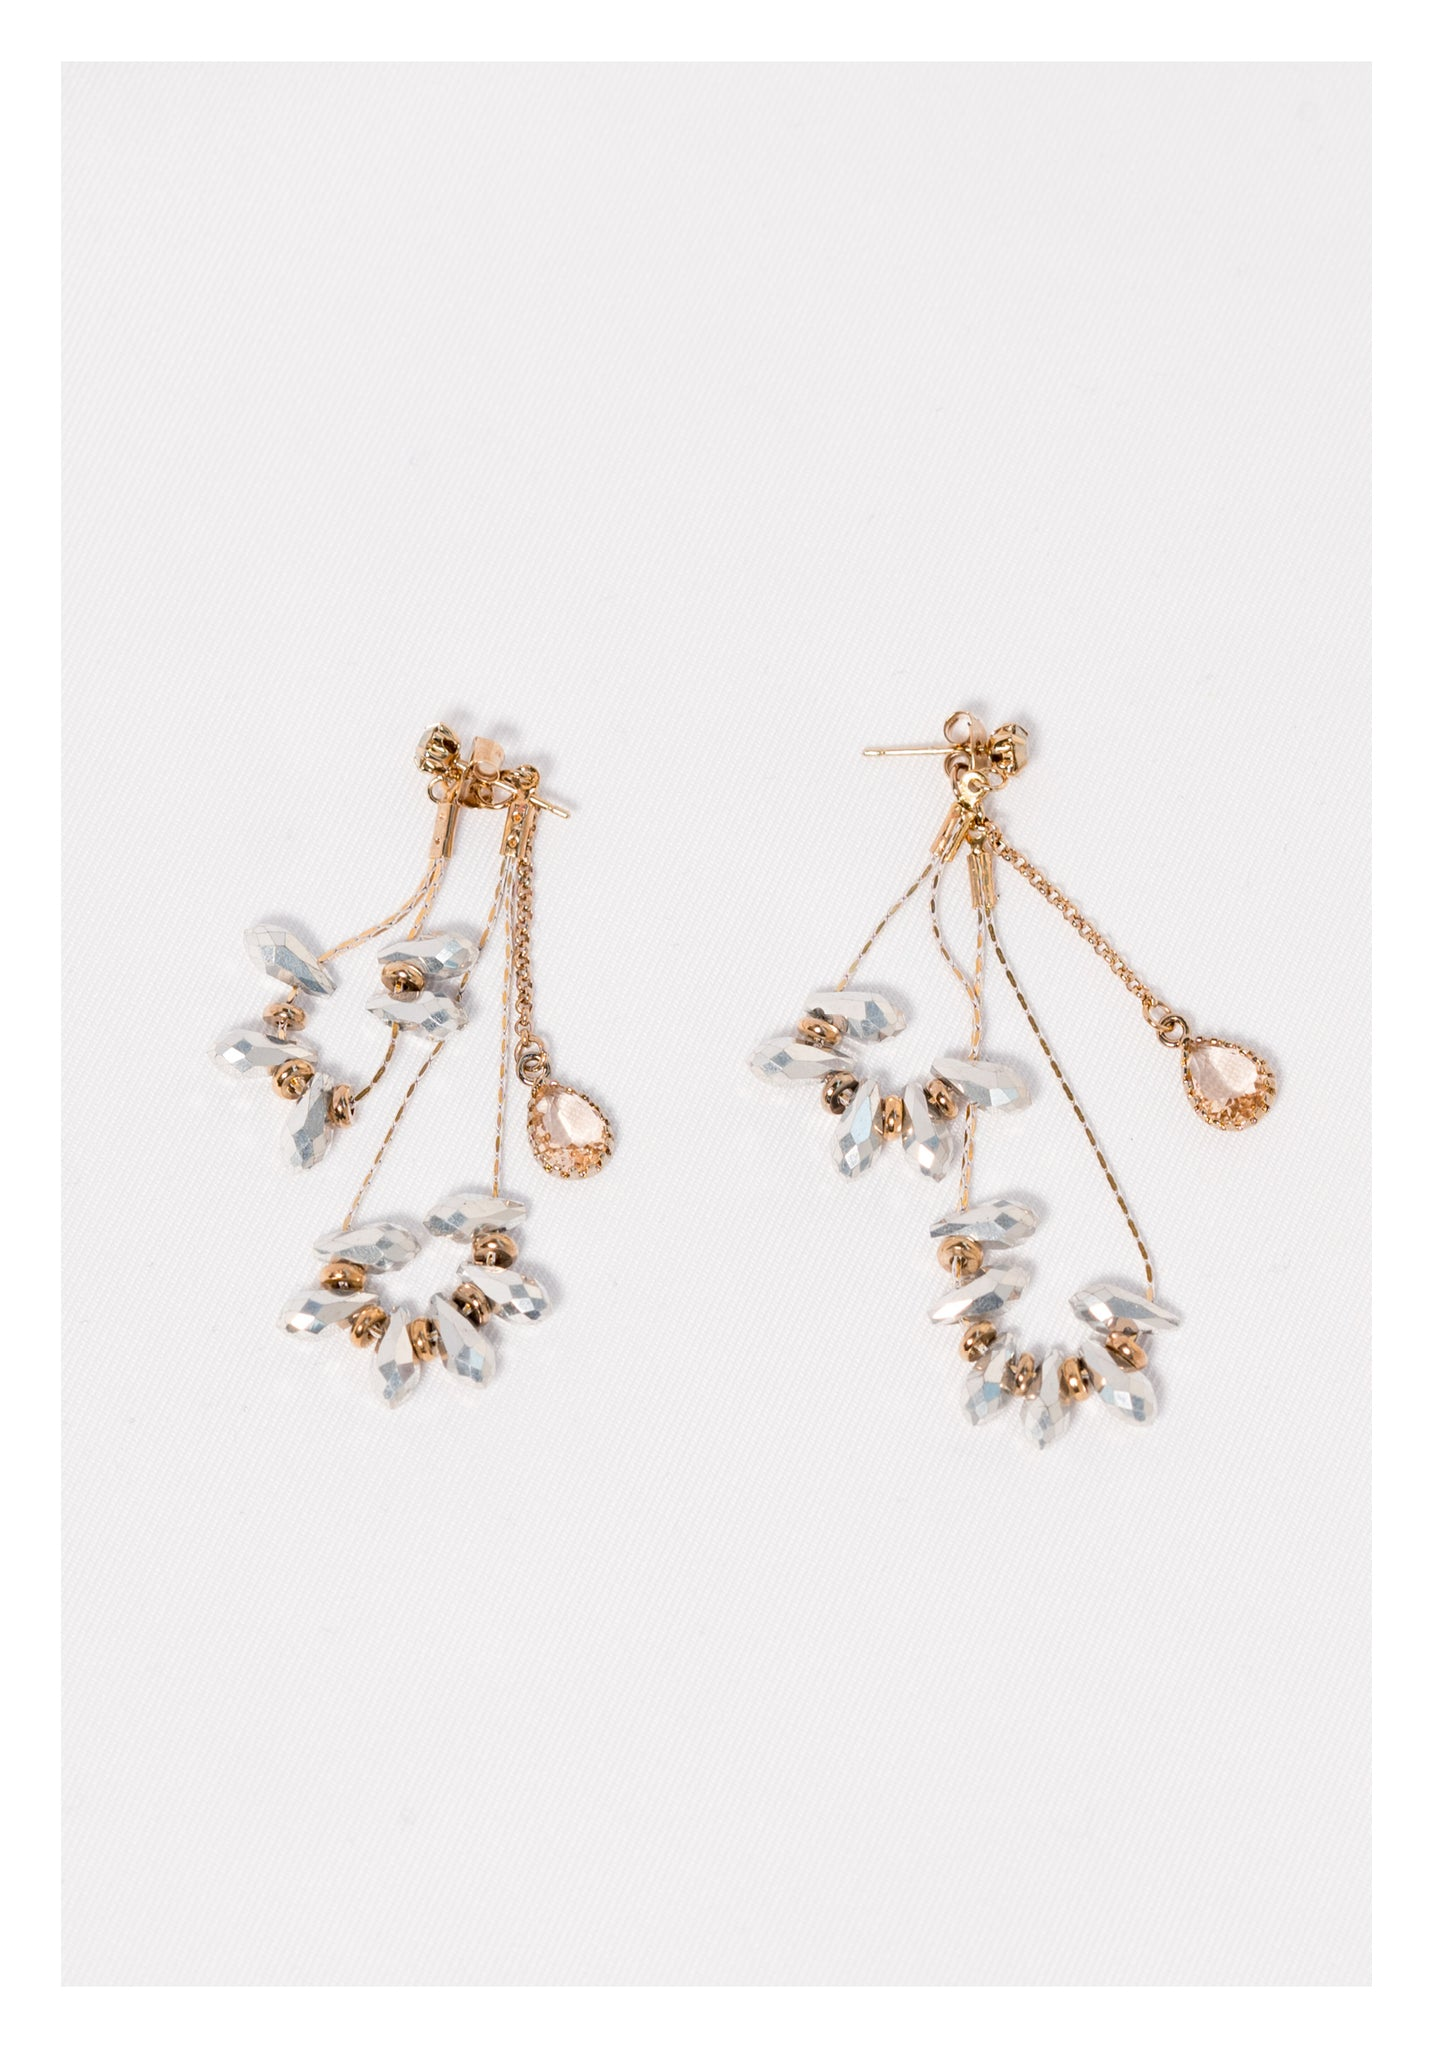 Gem And Chain Layer Earrings - whoami